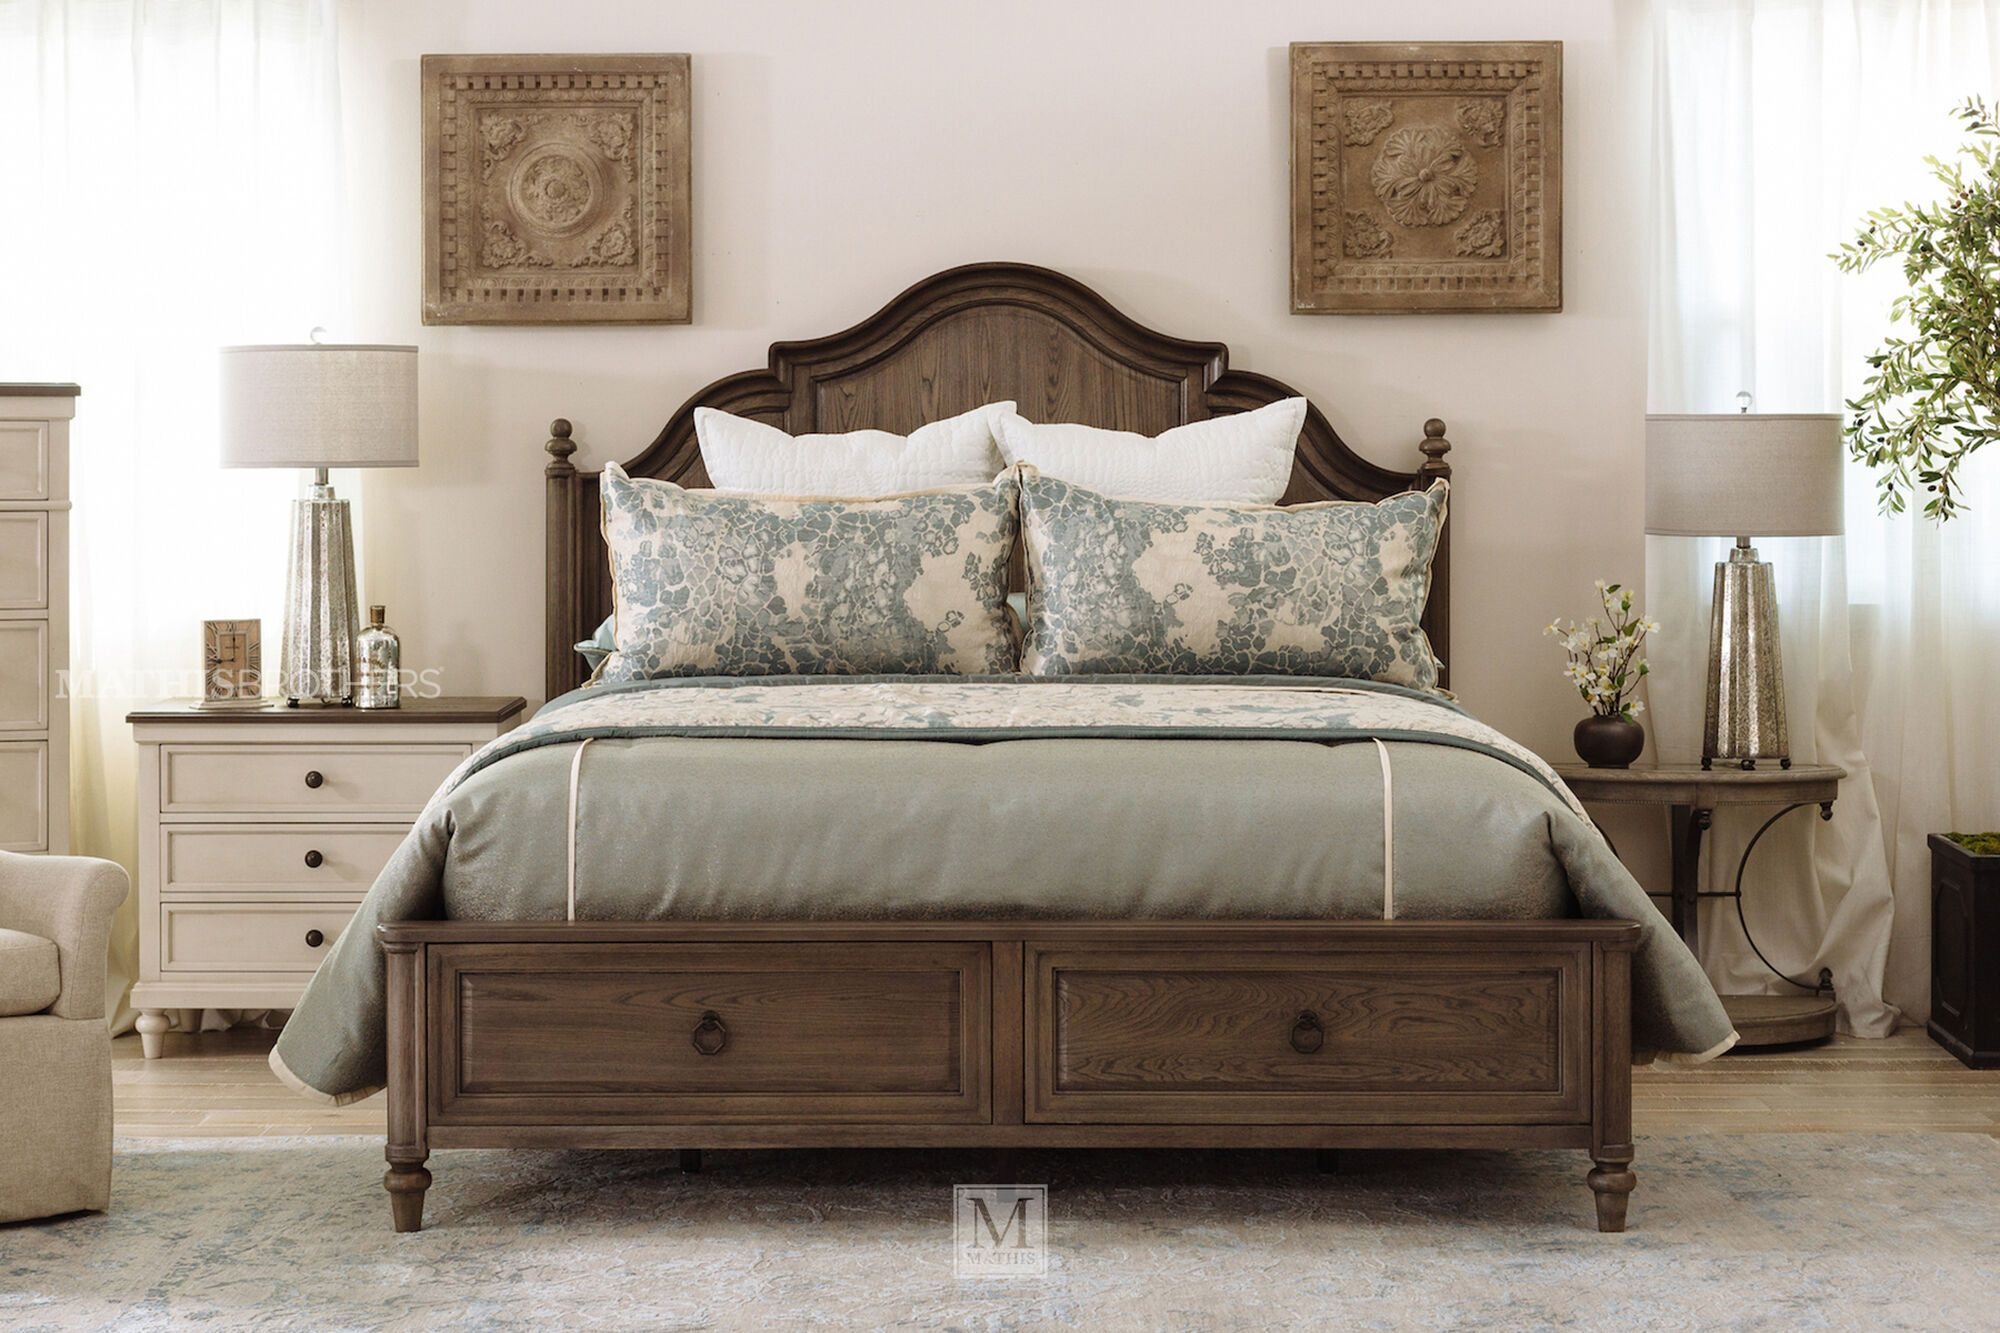 Pin by Hunt on 2305 in 2020 Panel bed, Bed, Furniture